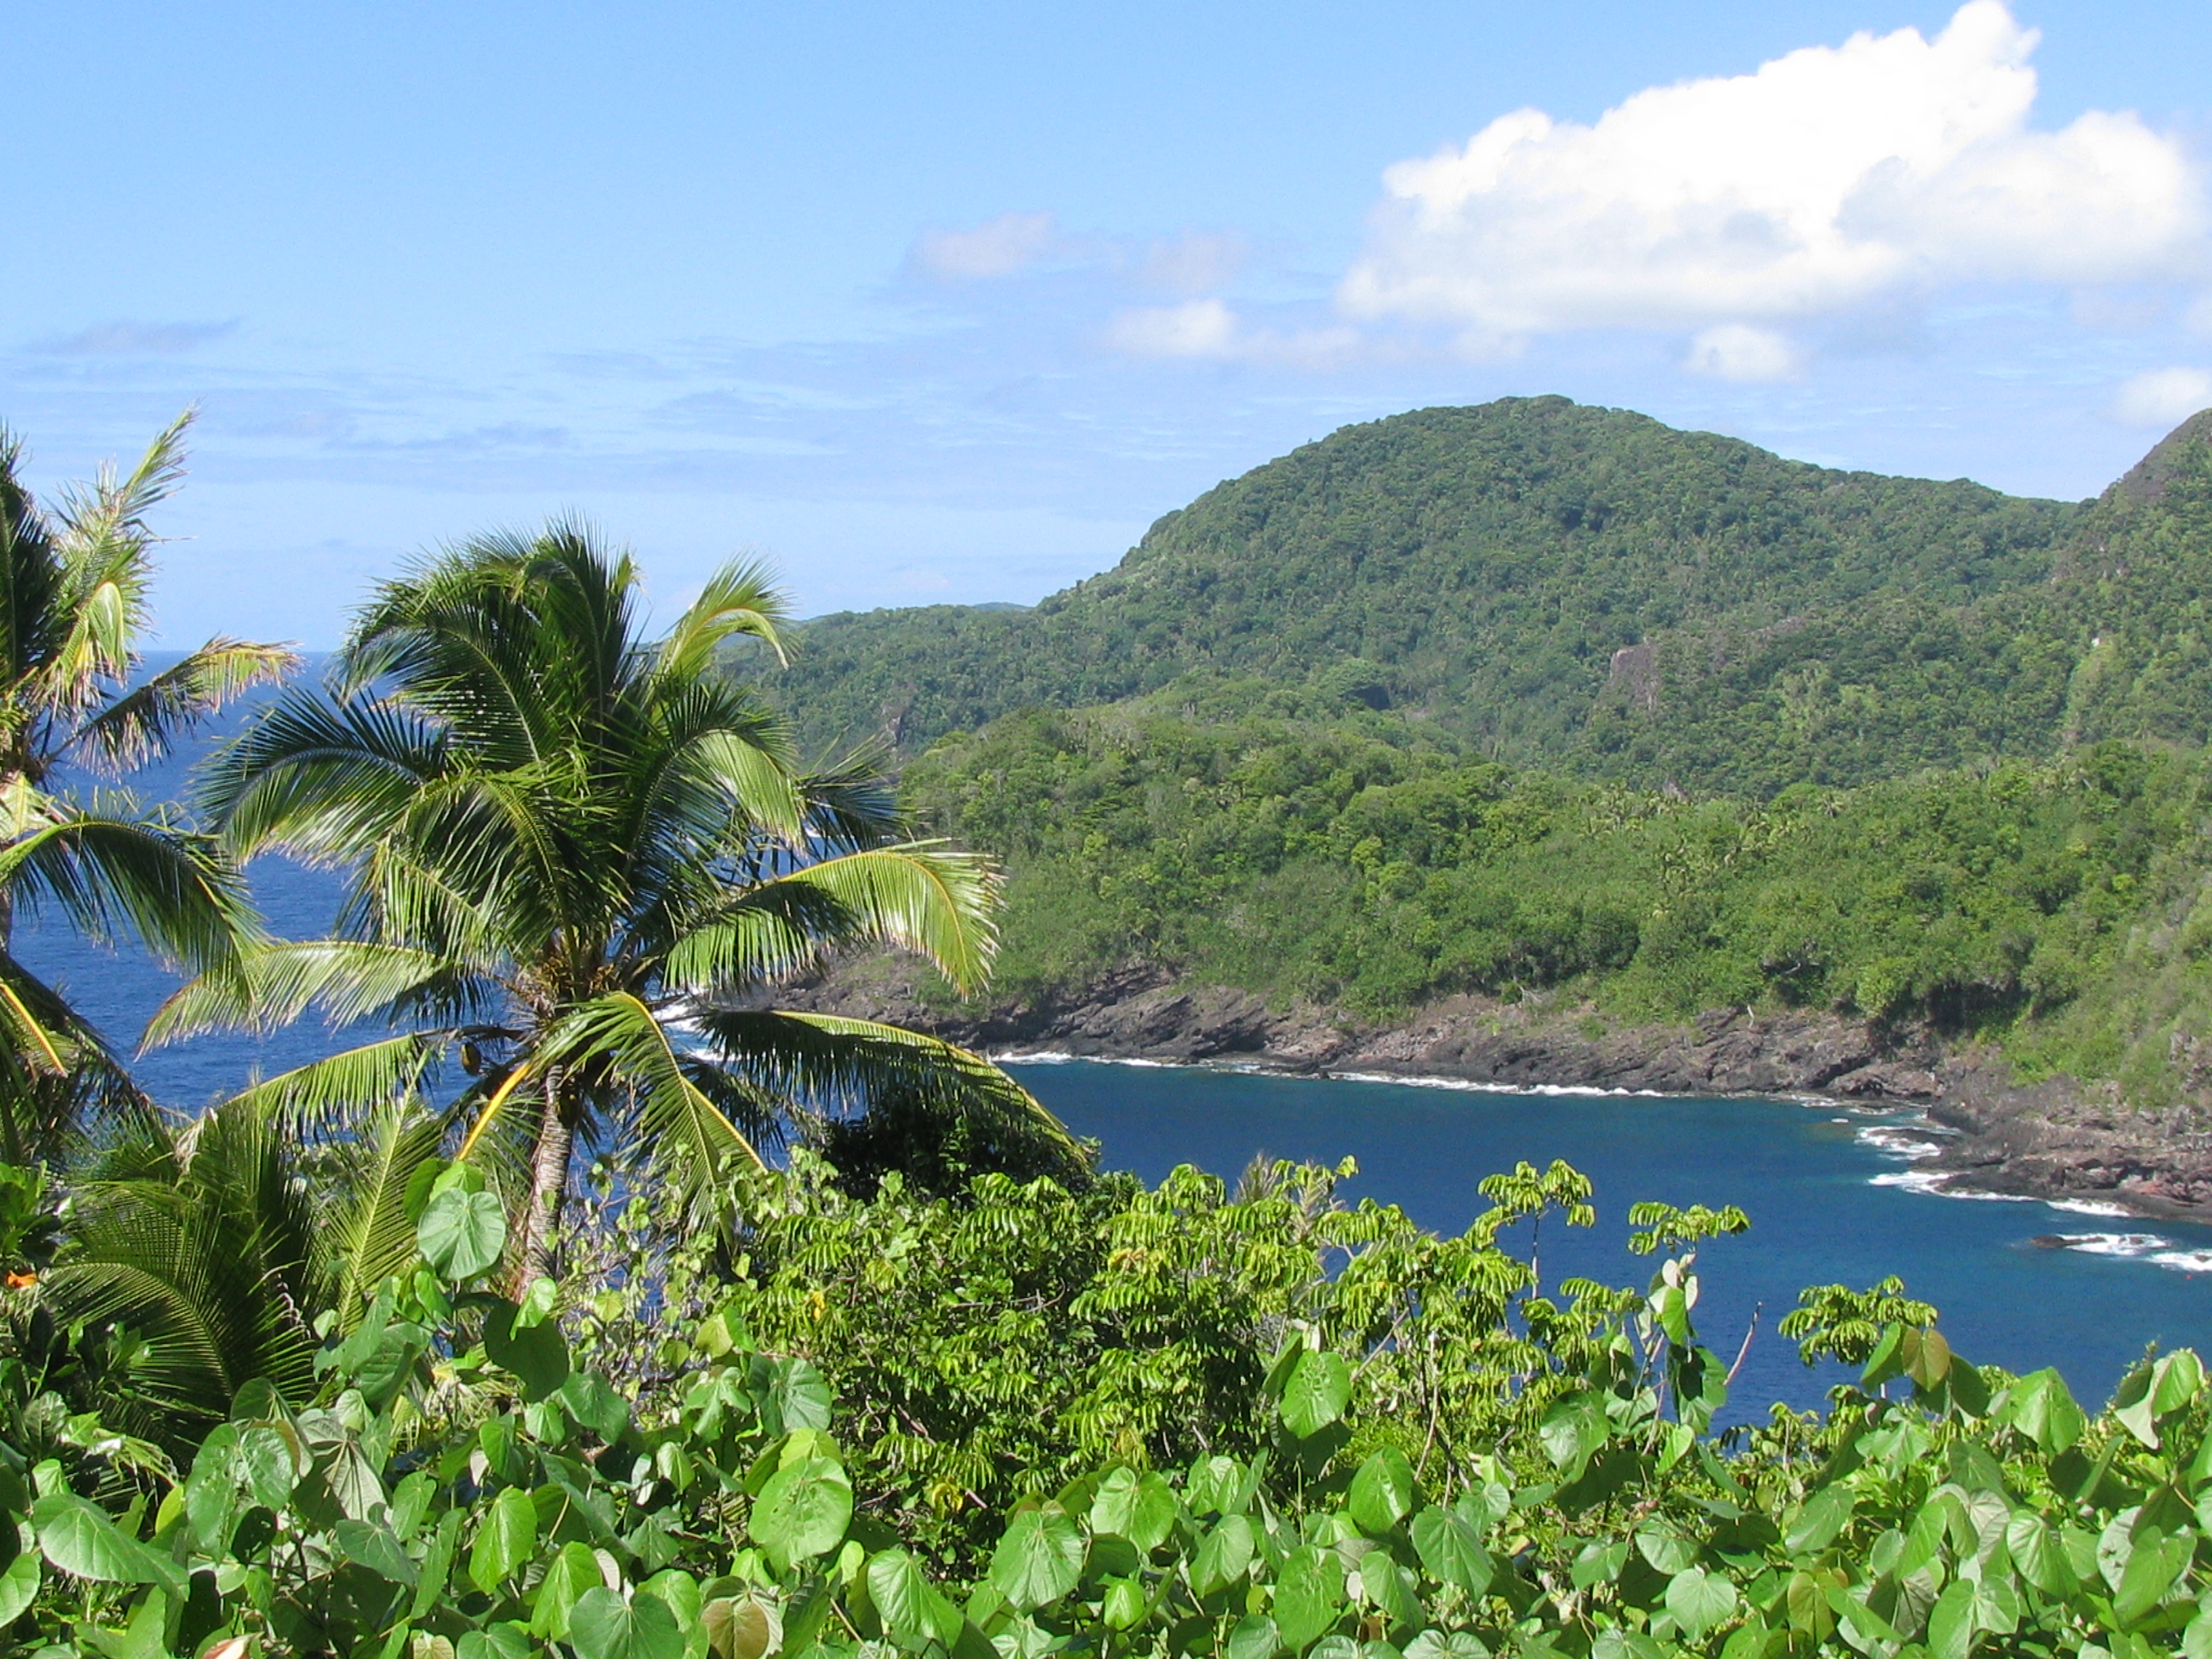 NationalParkAmericanSamoa.JPG